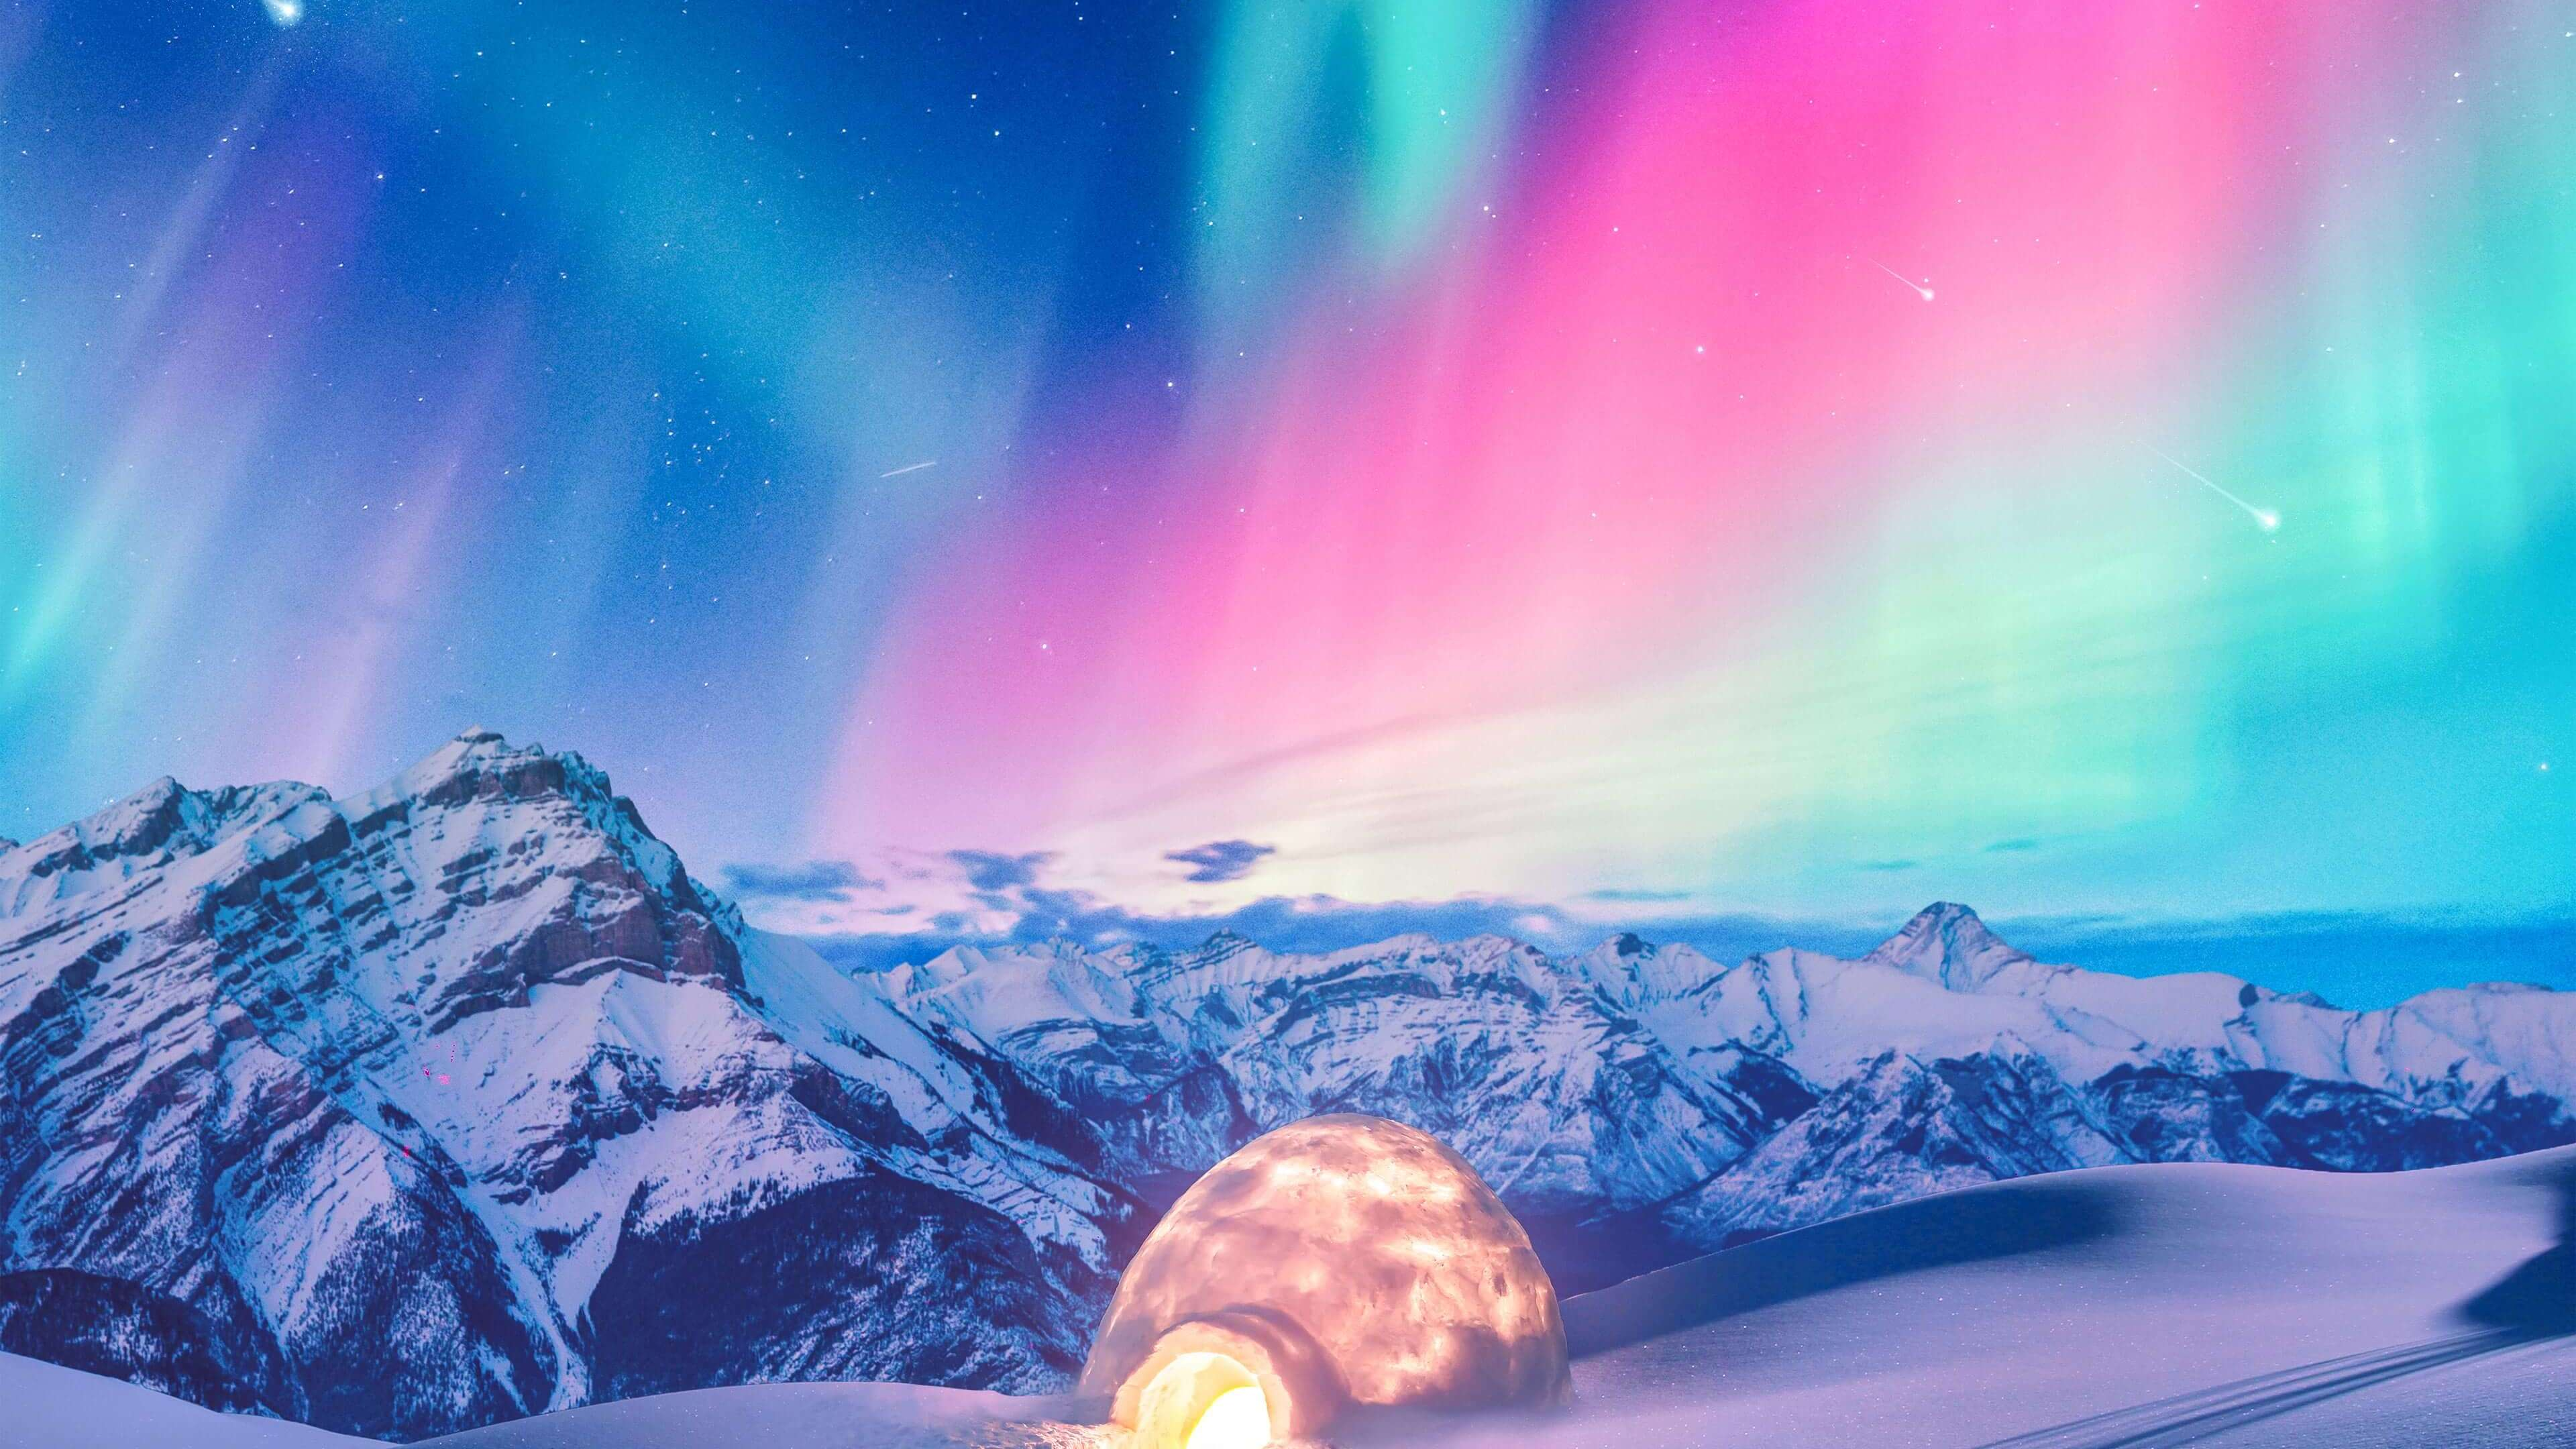 Wallpaper 4k Snow Winter Iceland Aurora Northern Lights 4k